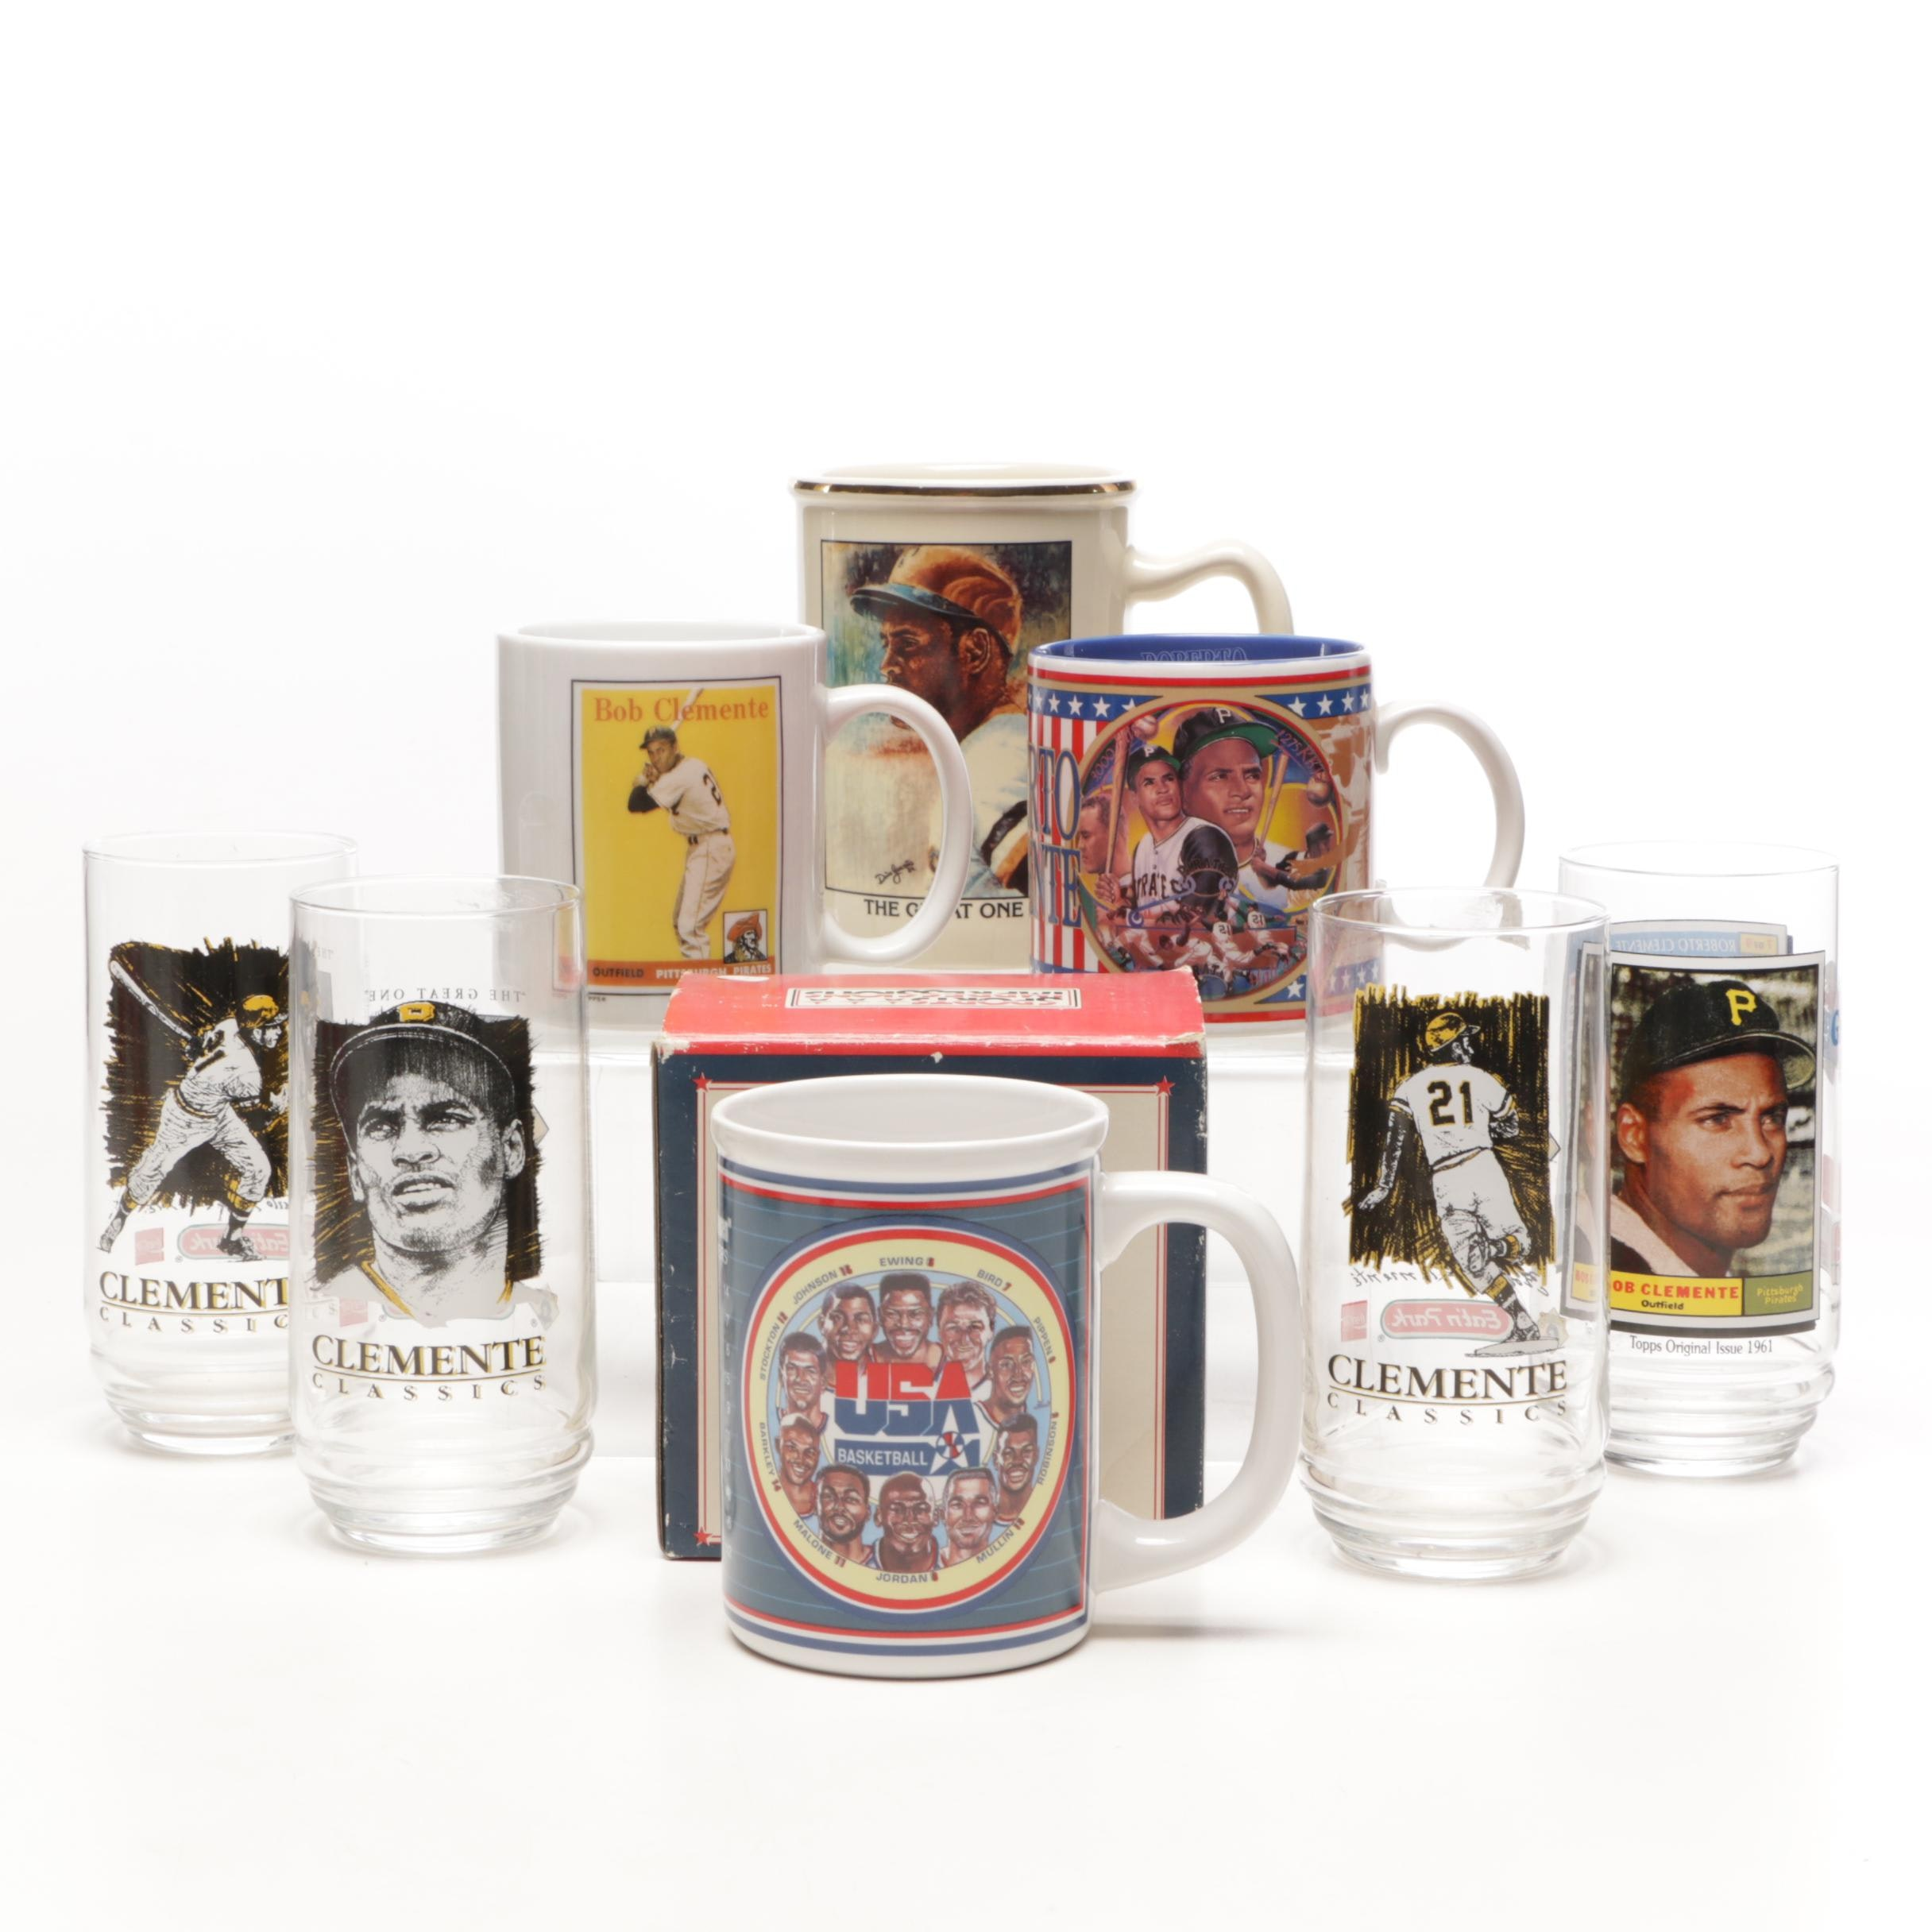 Sports Glasses, Mugs, and Stein Including Clemente and '94 USA Dream Team